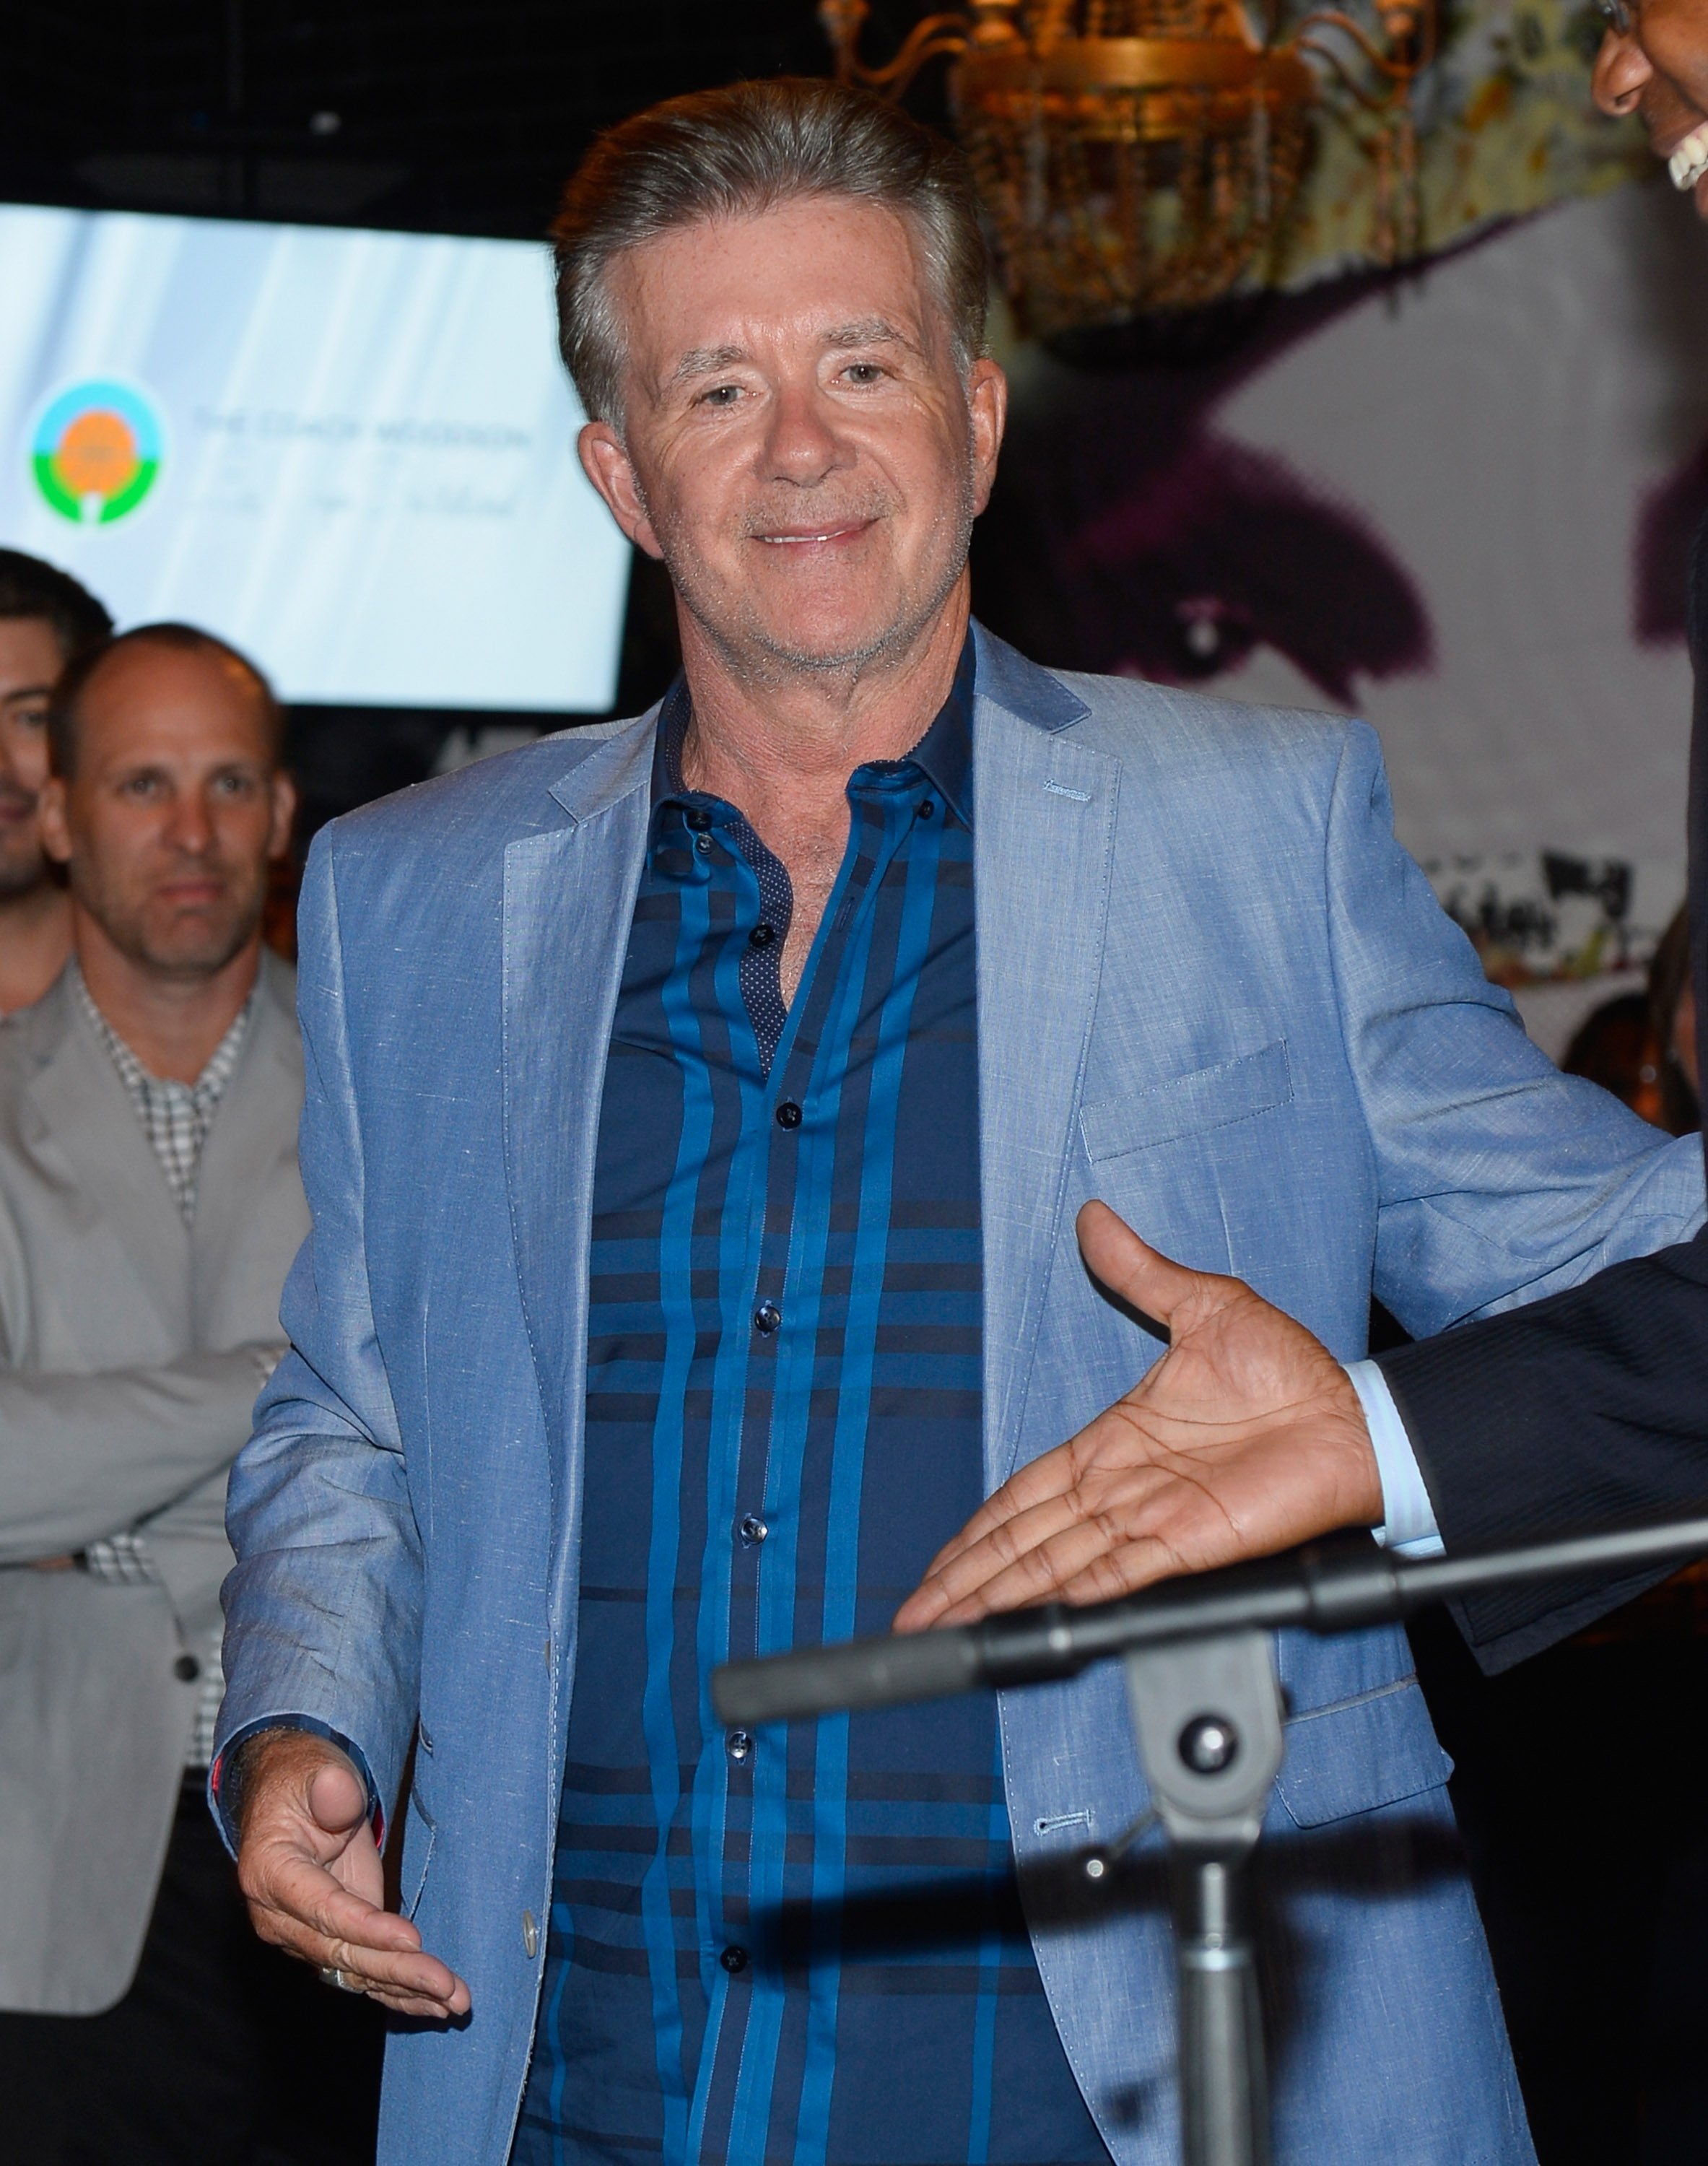 Alan Thicke attends the second annual Coach Woodson Las Vegas Invitational pairings party at on July 12, 2015 in Las Vegas